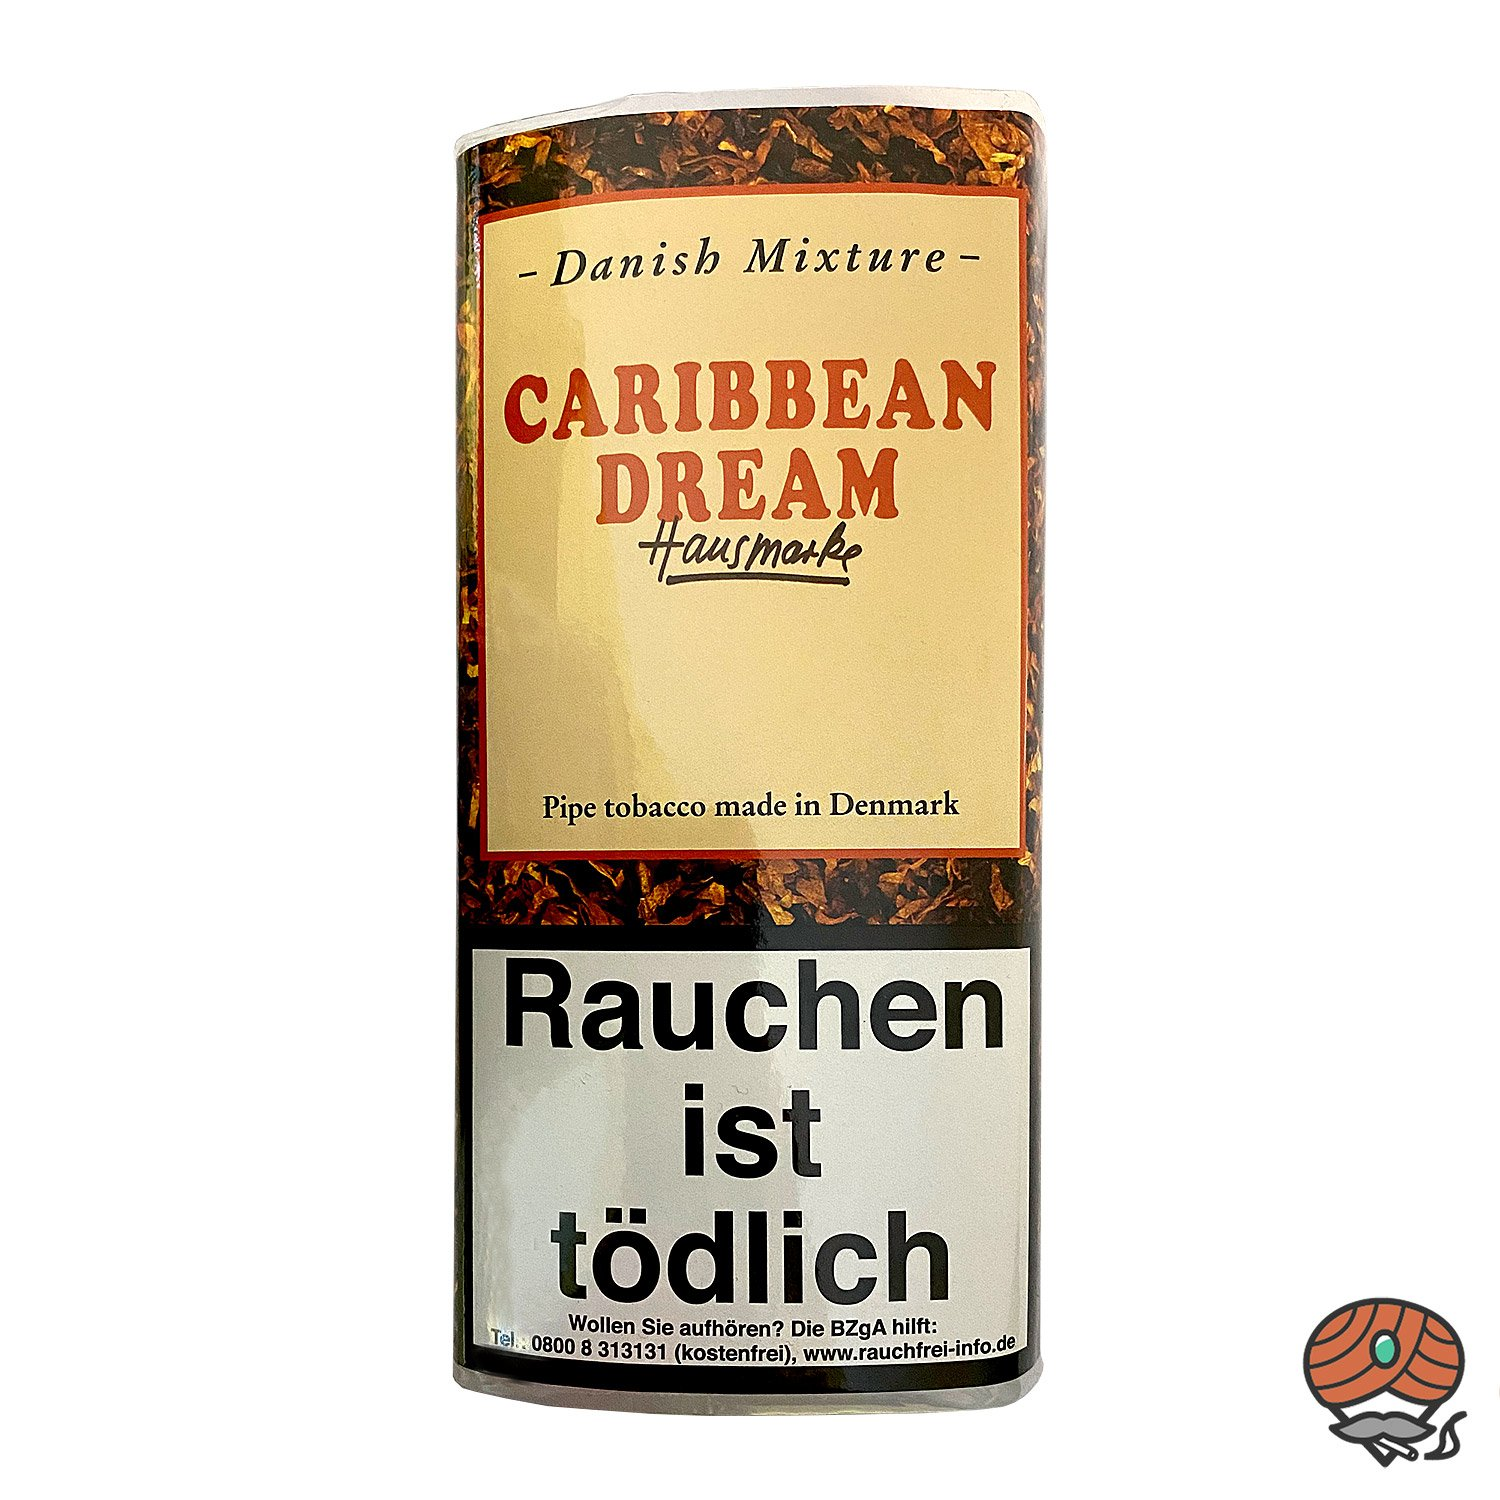 Danish Mixture Hausmarke Caribbean Dream Pfeifentabak 50g Pouch